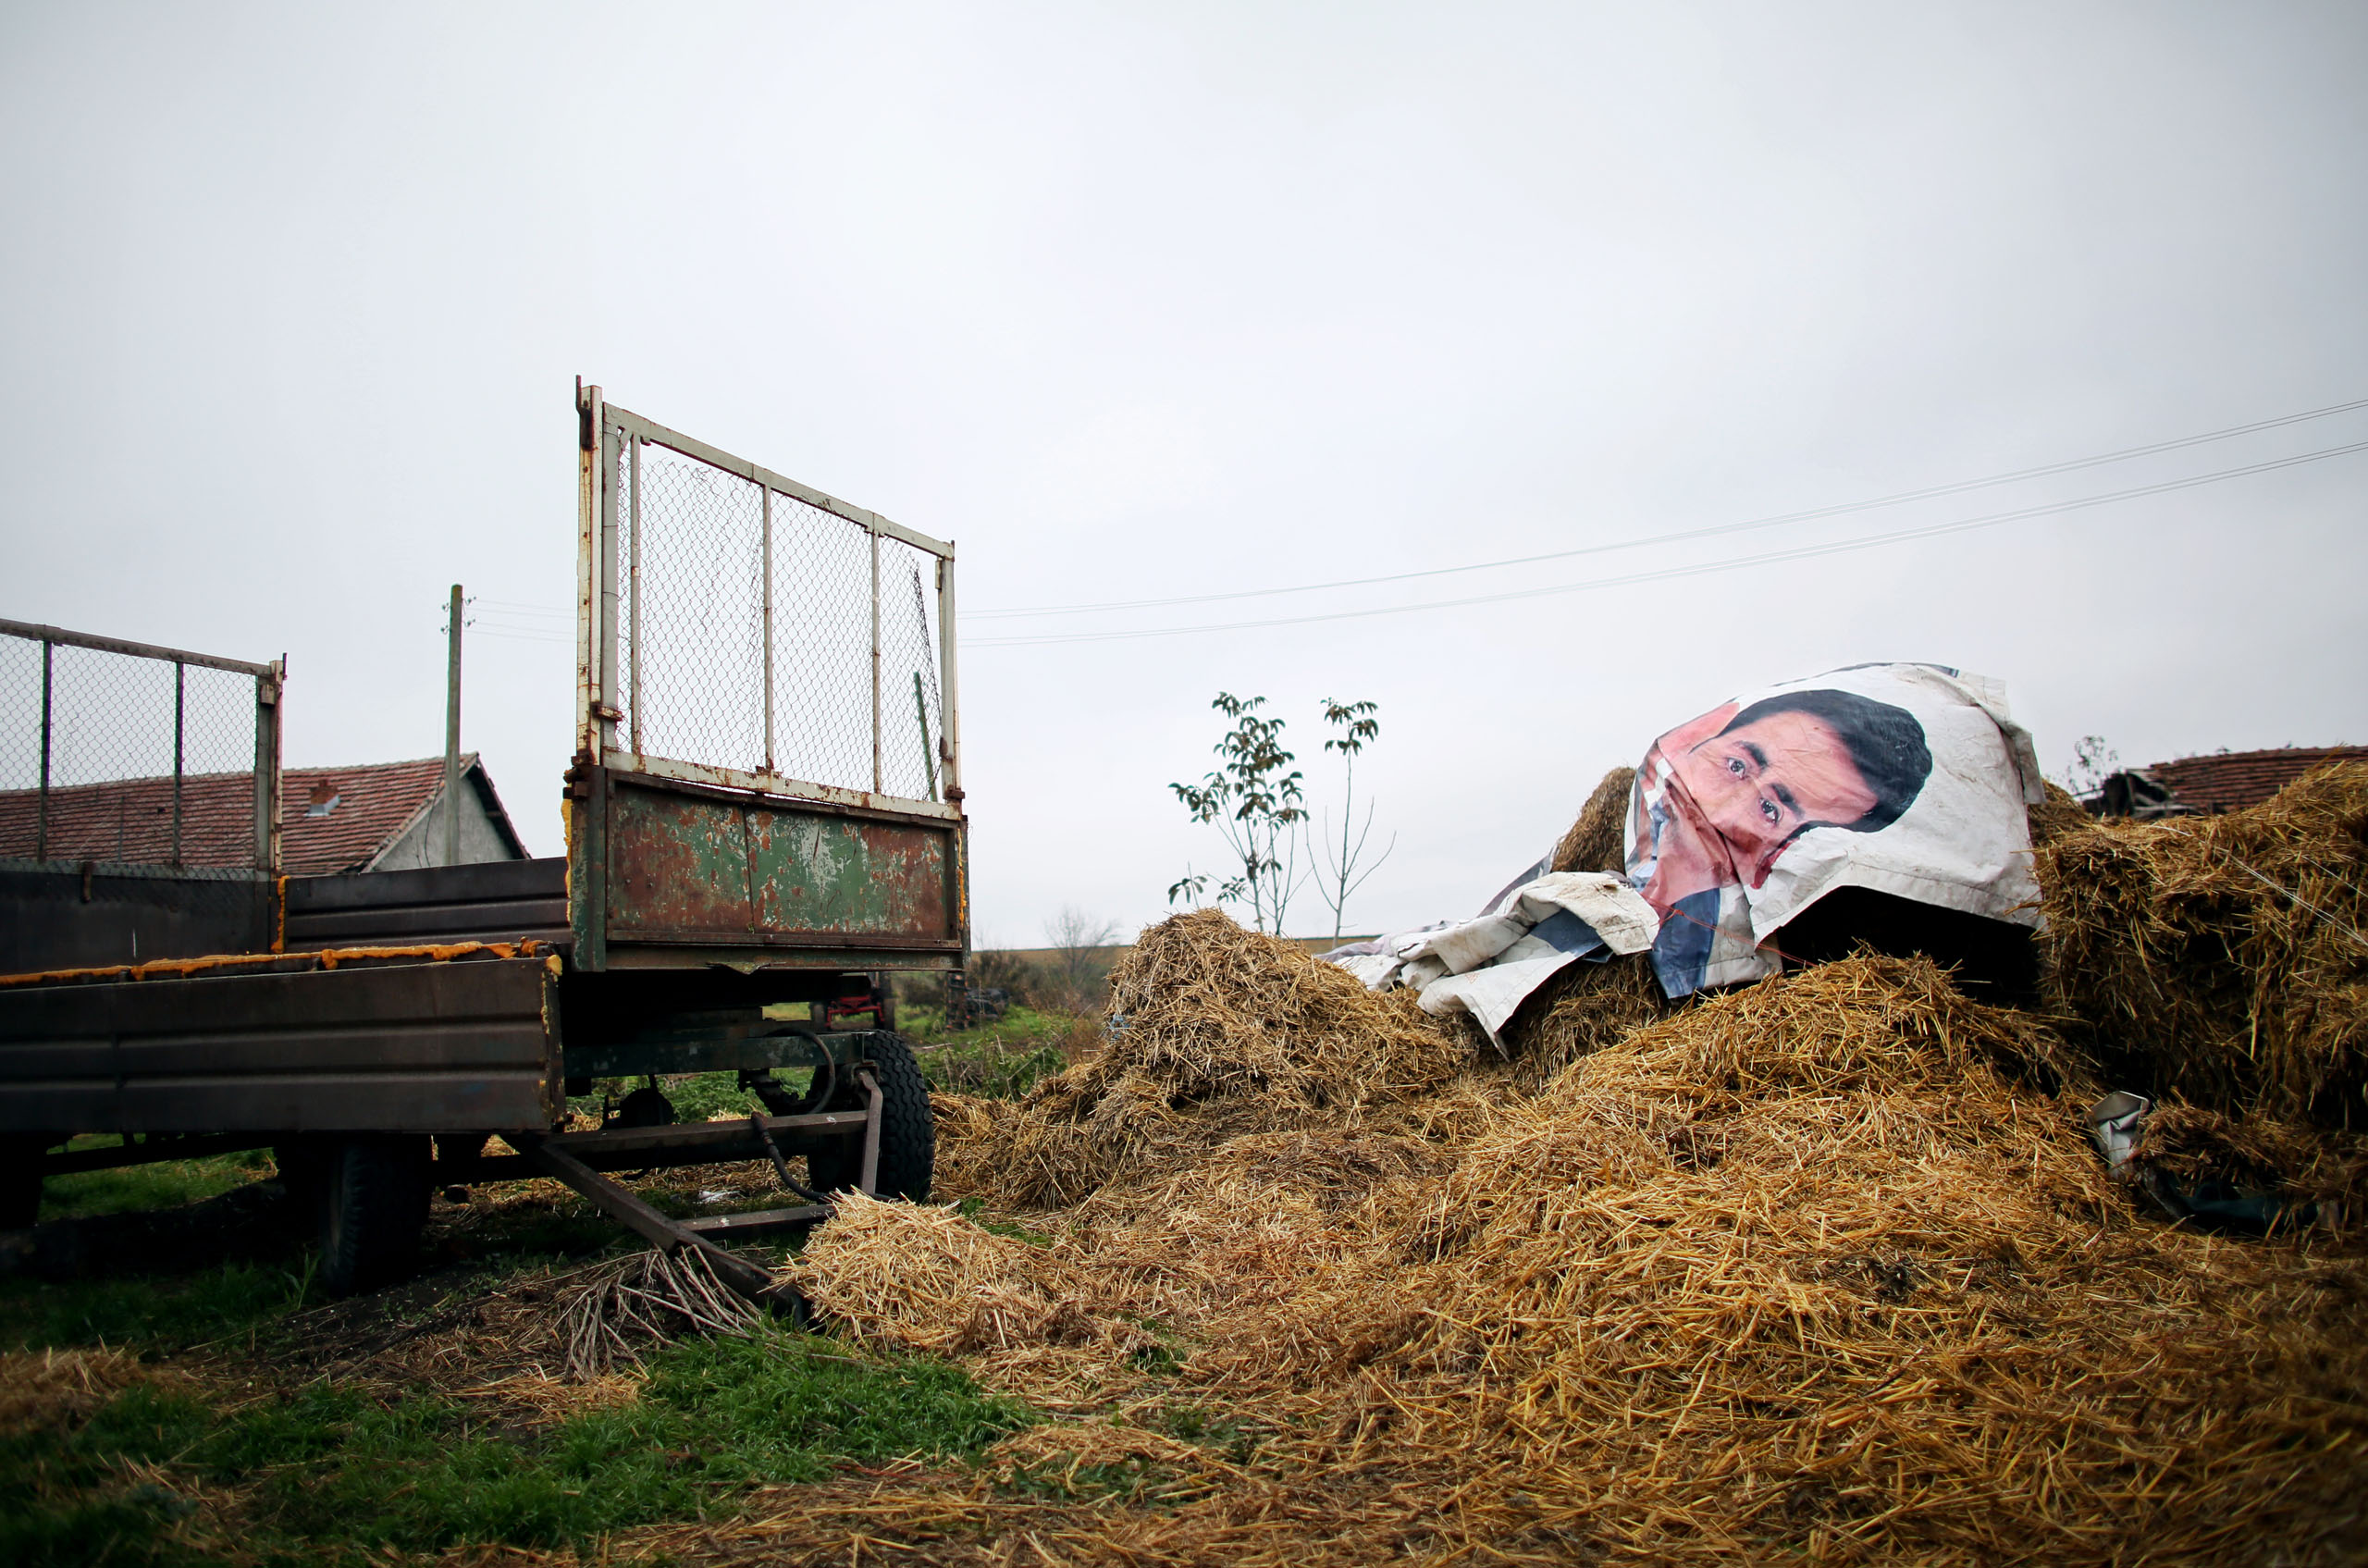 A poster of an advertisement is used as a covering for a farmer's stacks of hay, near Belene, Nov. 10, 2014.